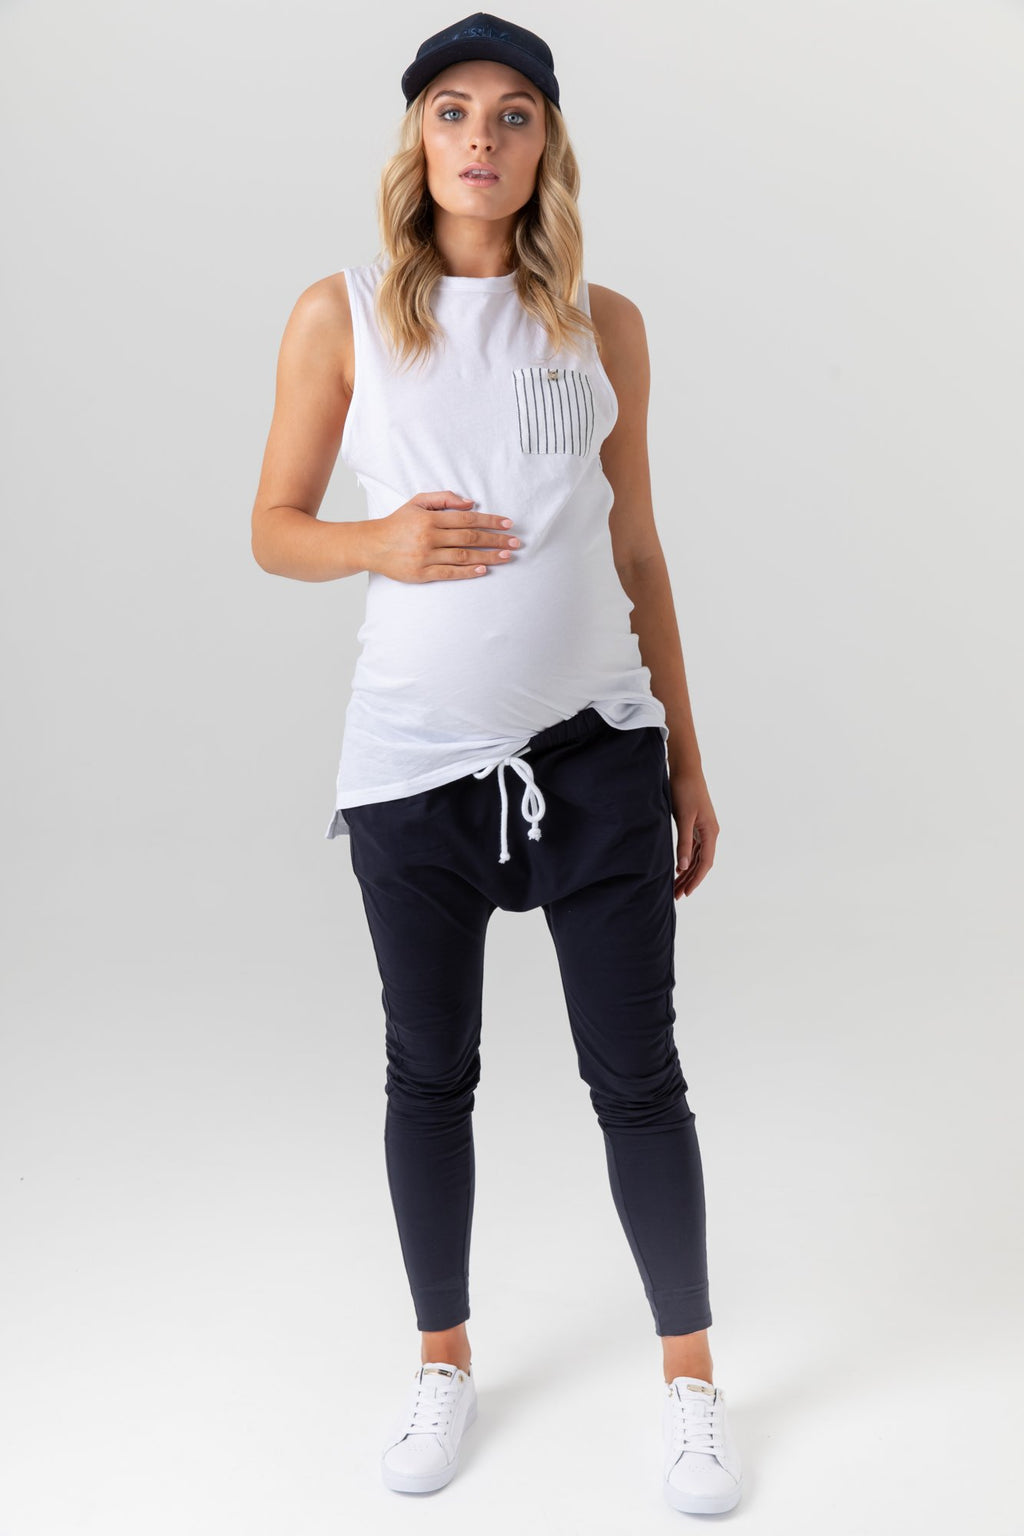 maternity + nursing tank | monarch tank | white - MUMMA + BUBBA COLLECTIVE